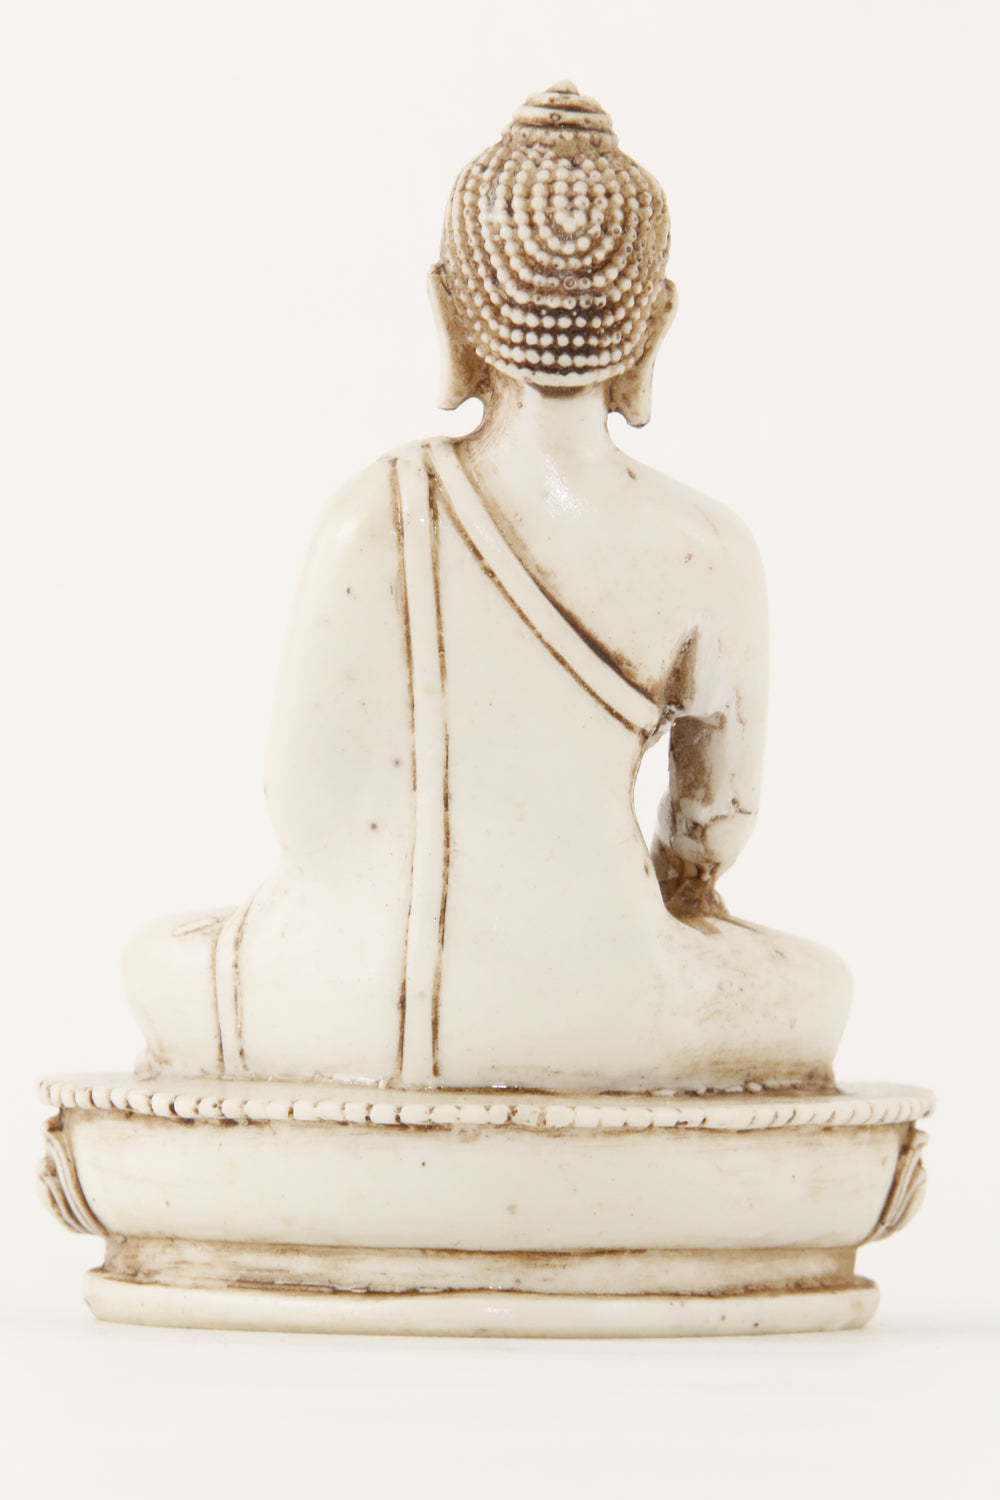 EARTH TOUCHING BUDDHA STATUE OFF-WHITE MEDIUM SIZE BACK VIEW